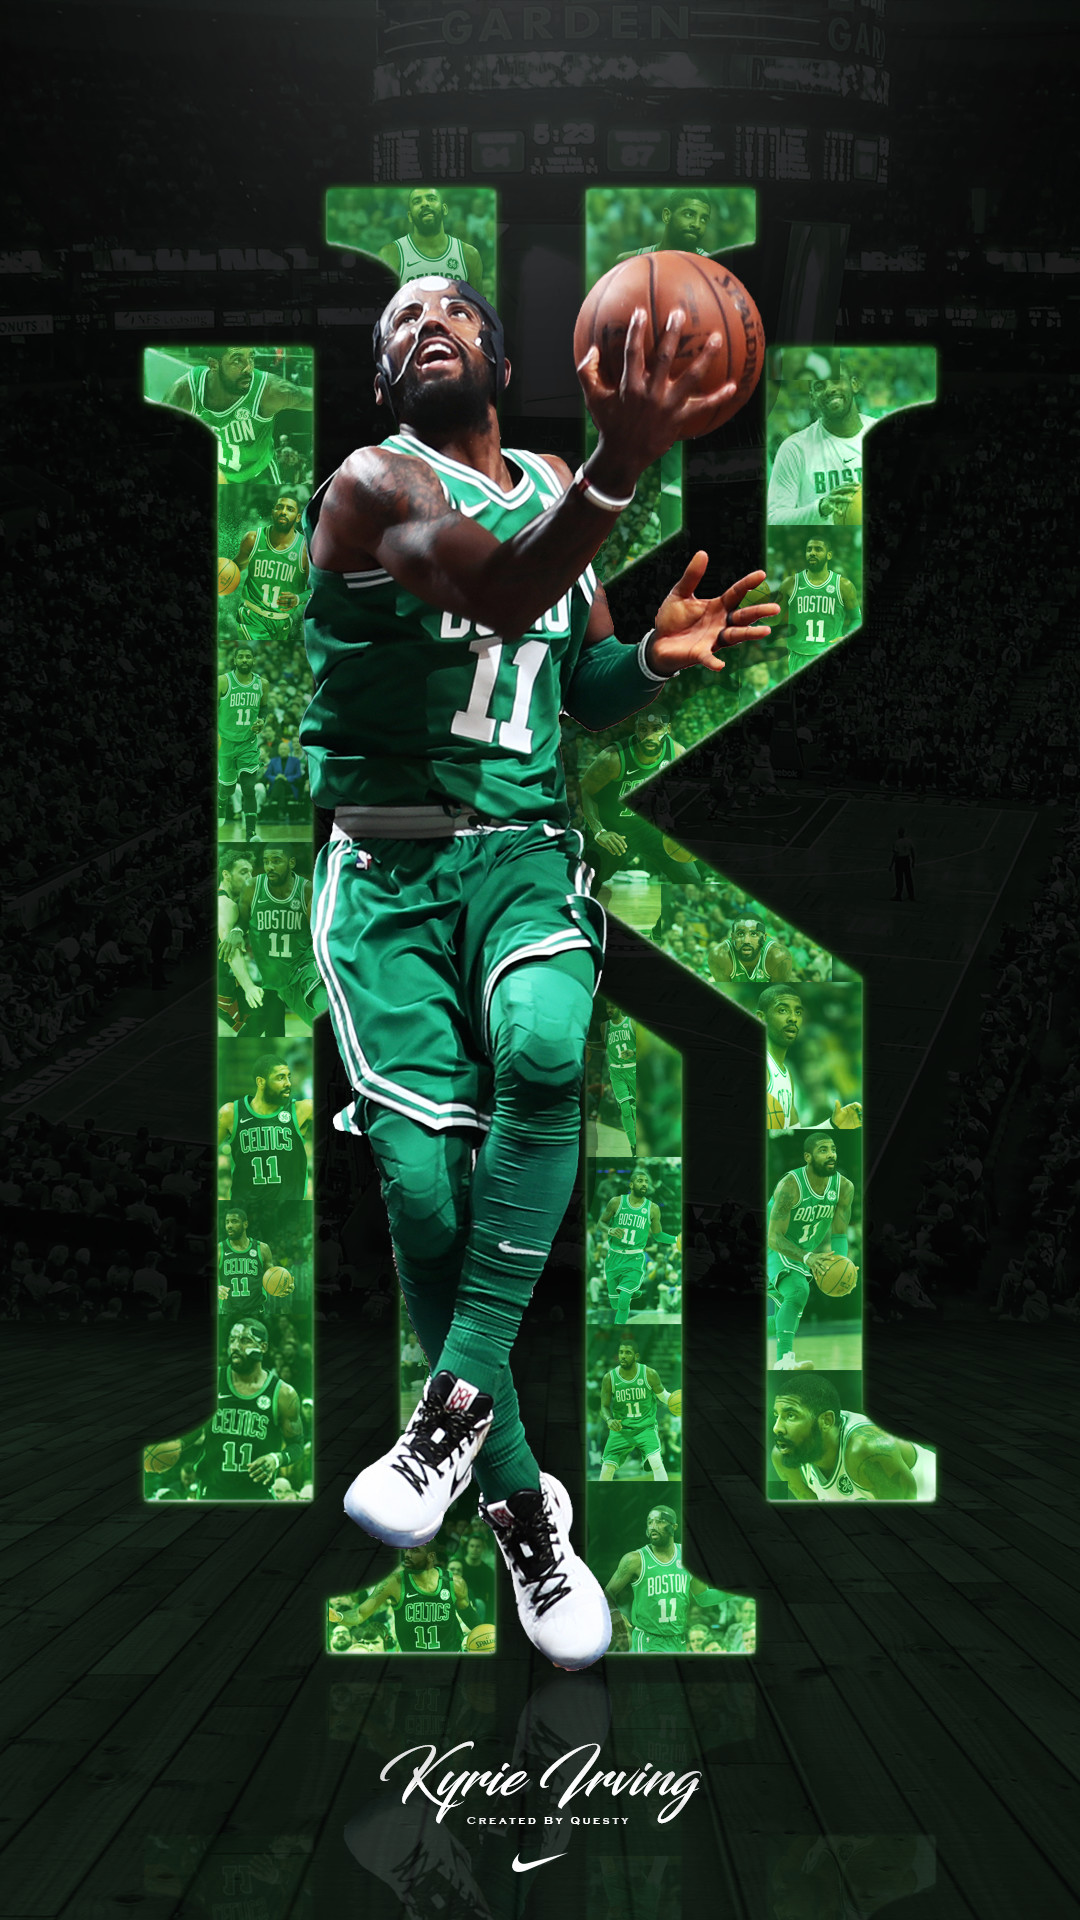 1080x1920 Kyrie Irving Celtics iPhone Wallpaper. Created by @QuestyTv on Twitter